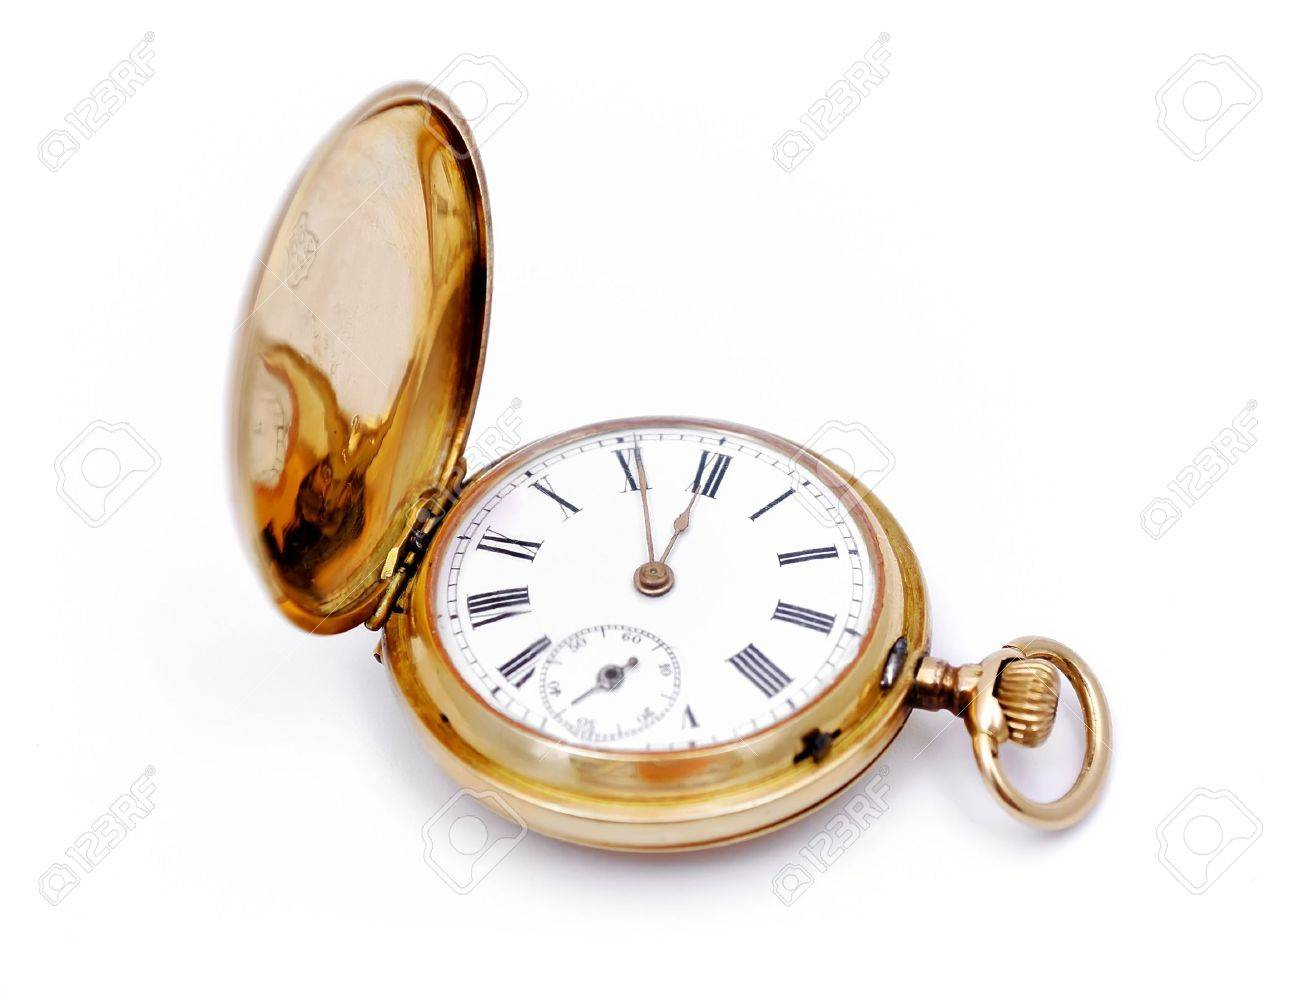 old gold pocket watch on a white background Stock Photo - 7396542